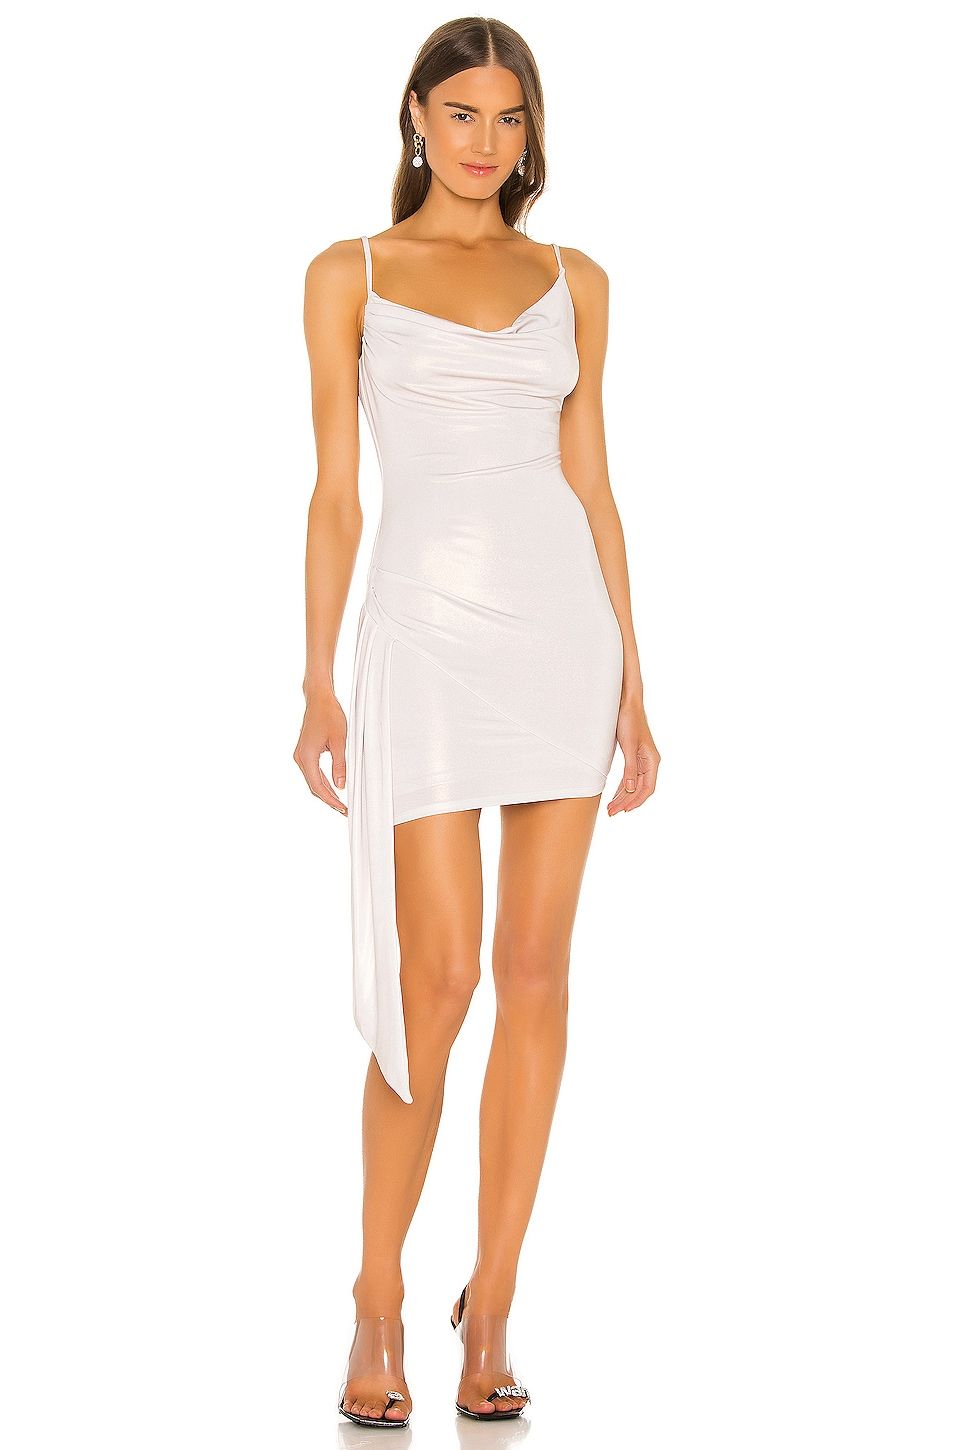 h:ours Cielo Mini Dress in White Gold